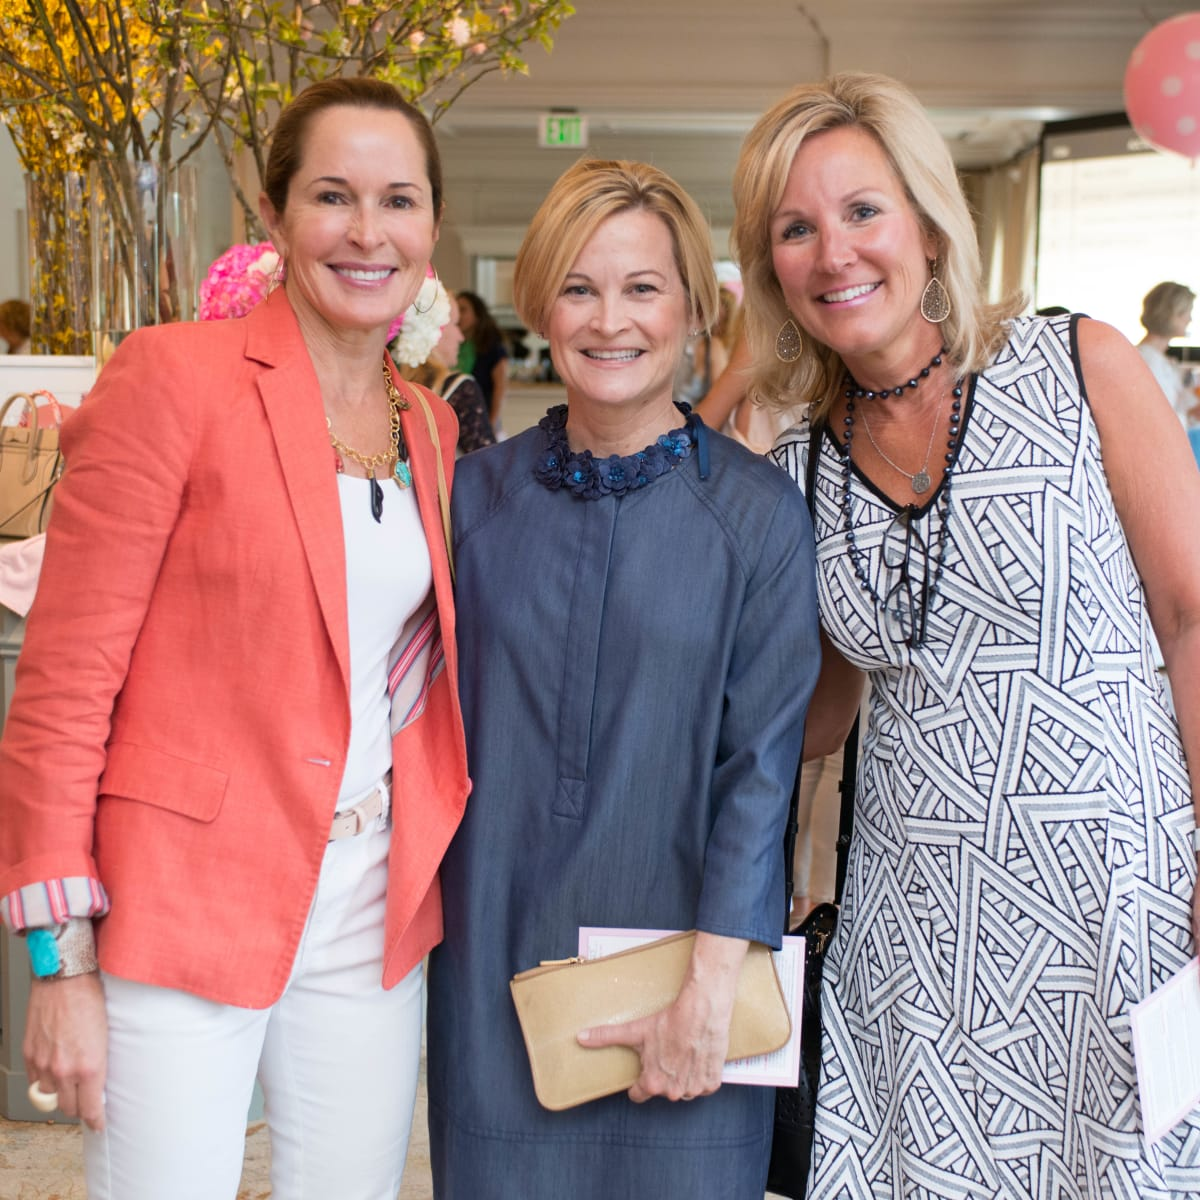 denims de rigueur at river oaks charity luncheon - culturemap houston